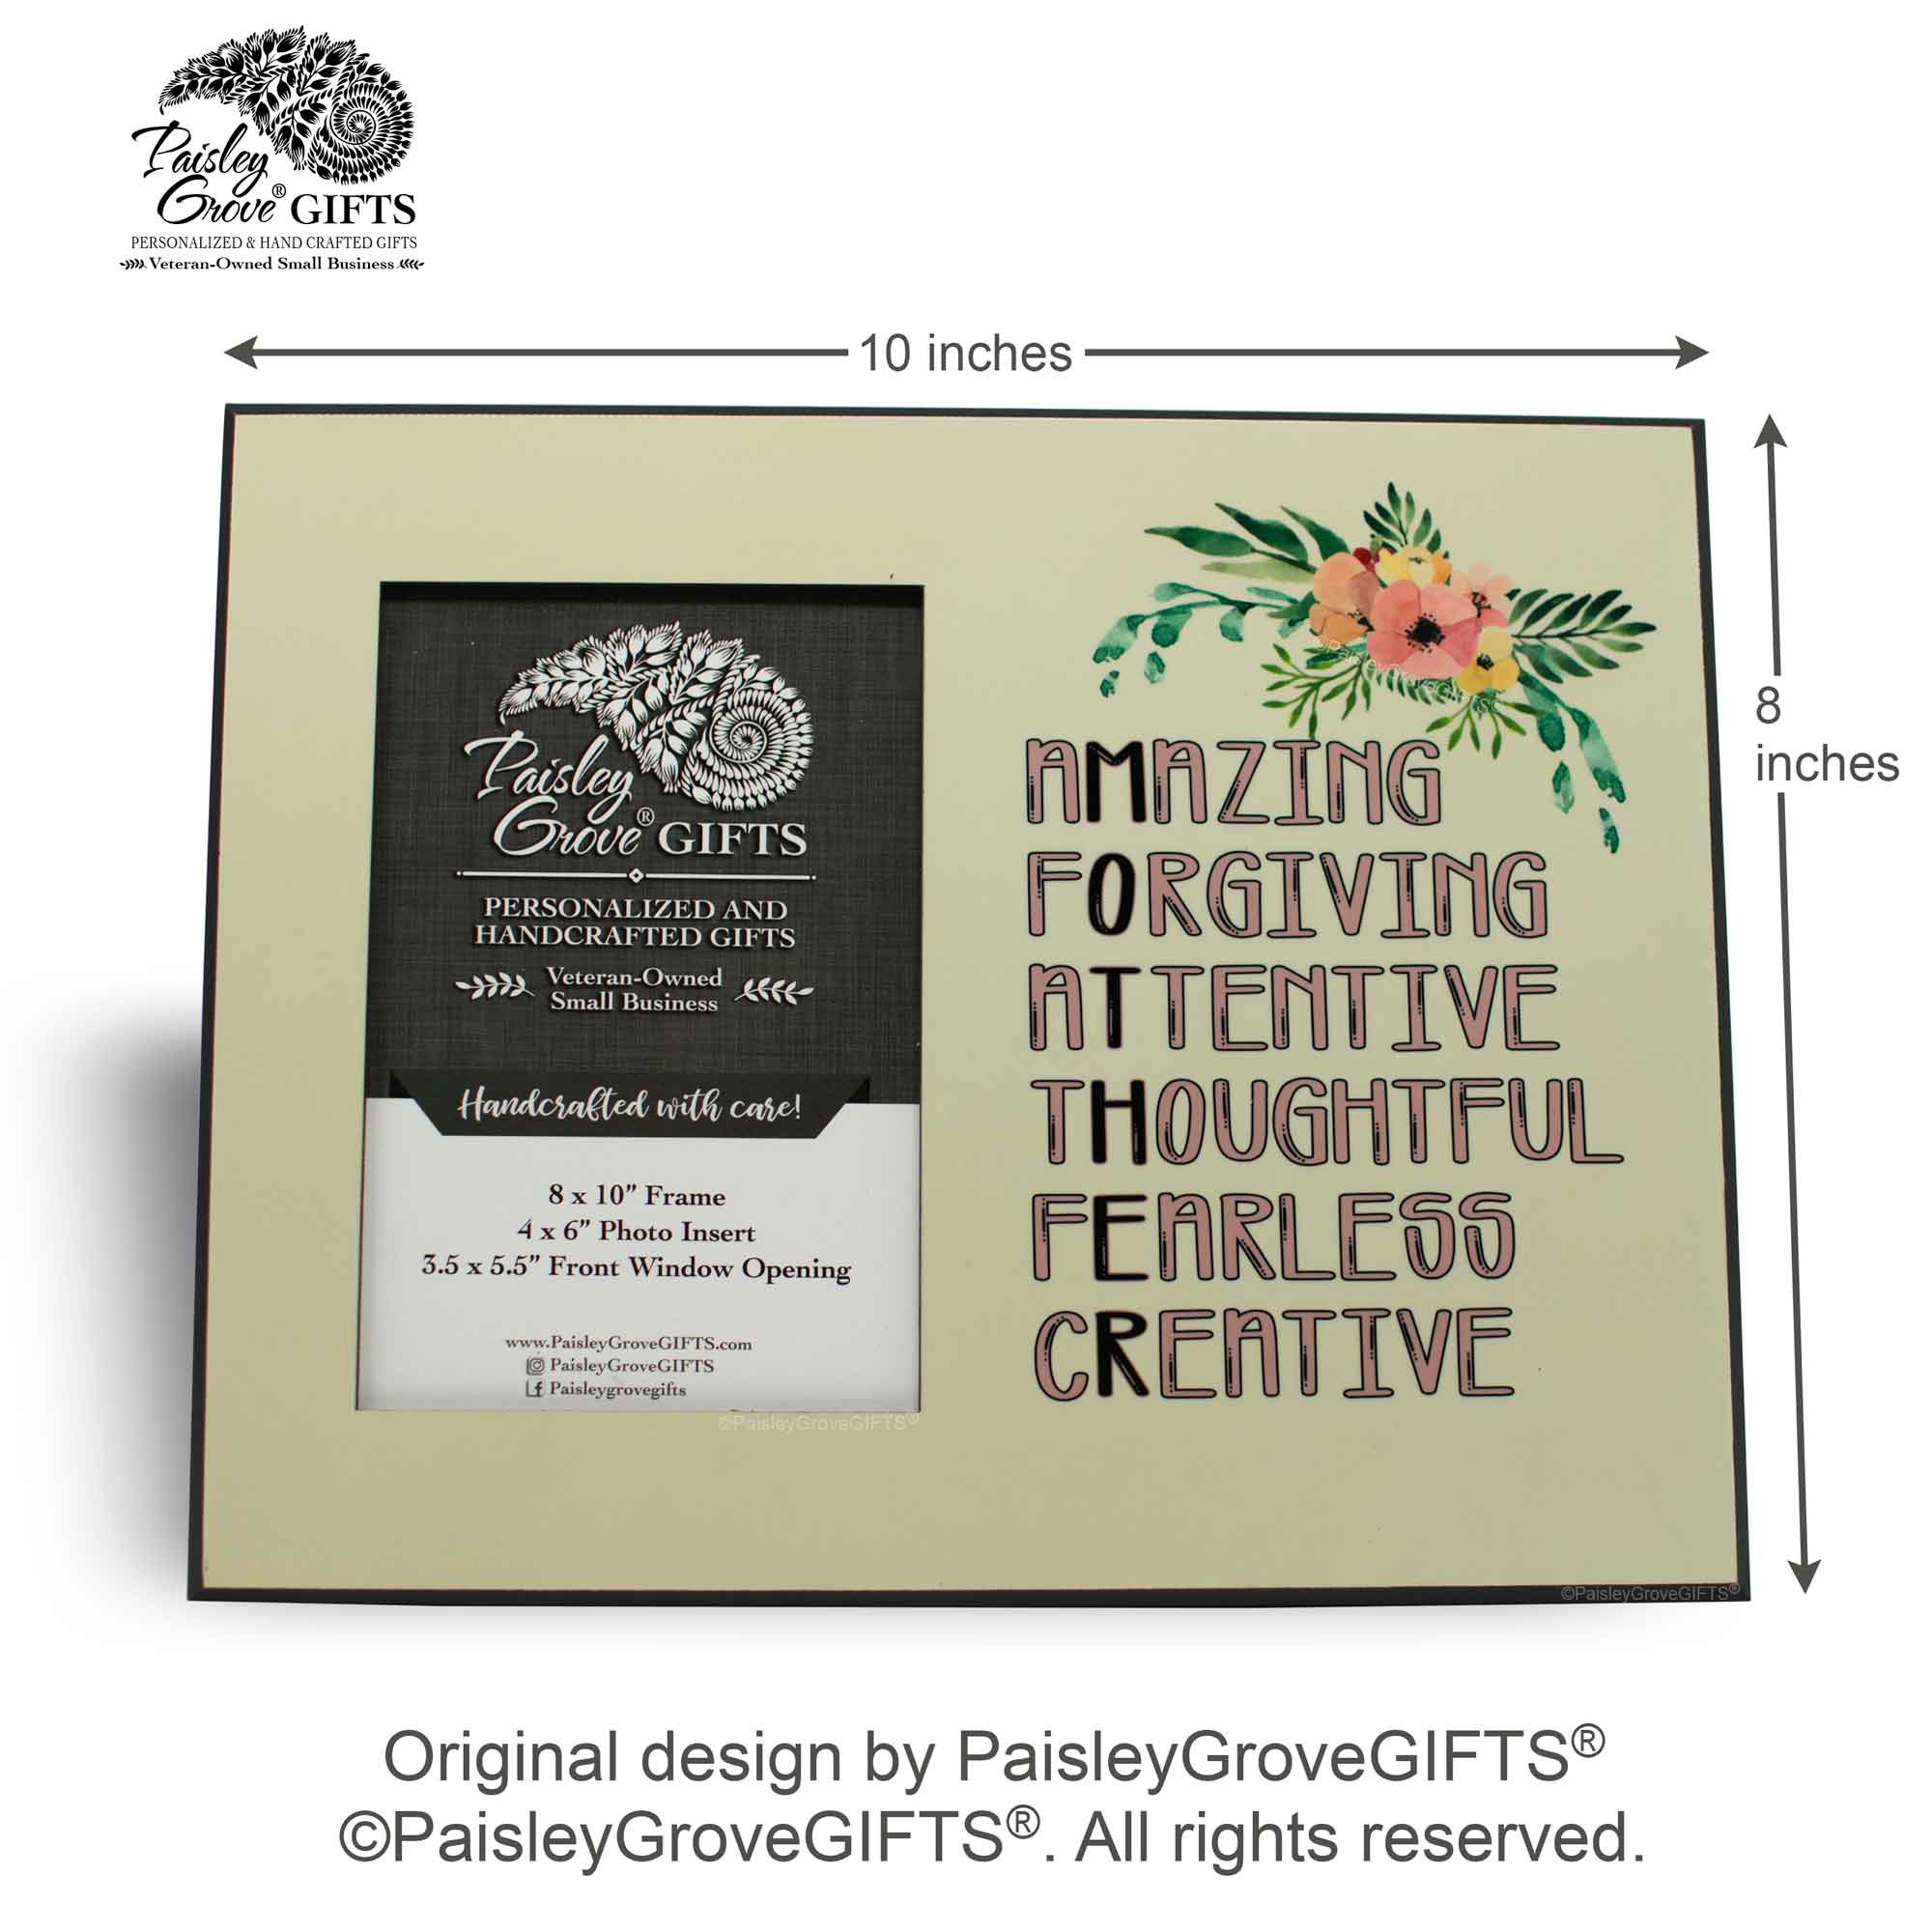 CopyrightPaisleyGroveGIFTS S202b Measurements for sentimental Mom Gift with Loving Mom Quote